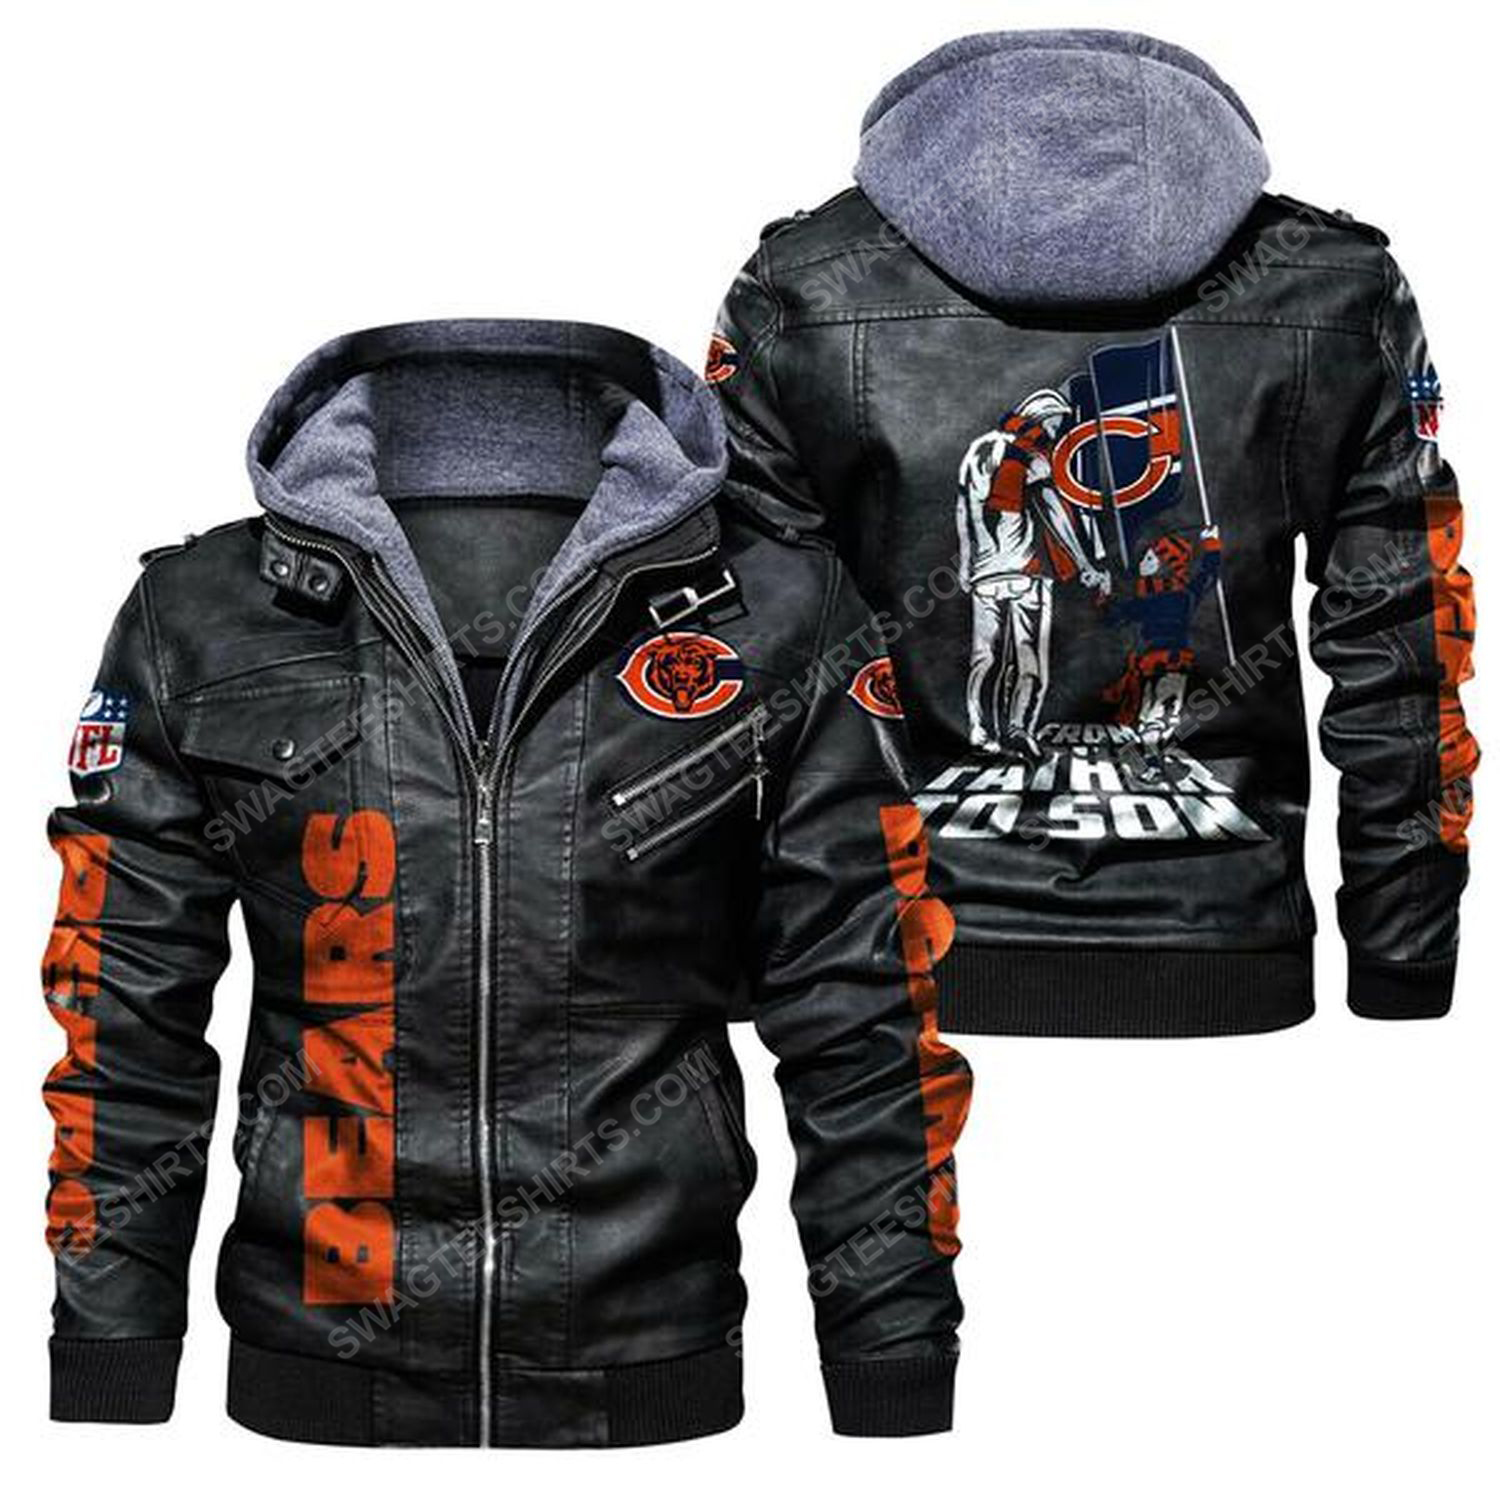 National football league chicago bears from father to son leather jacket - black